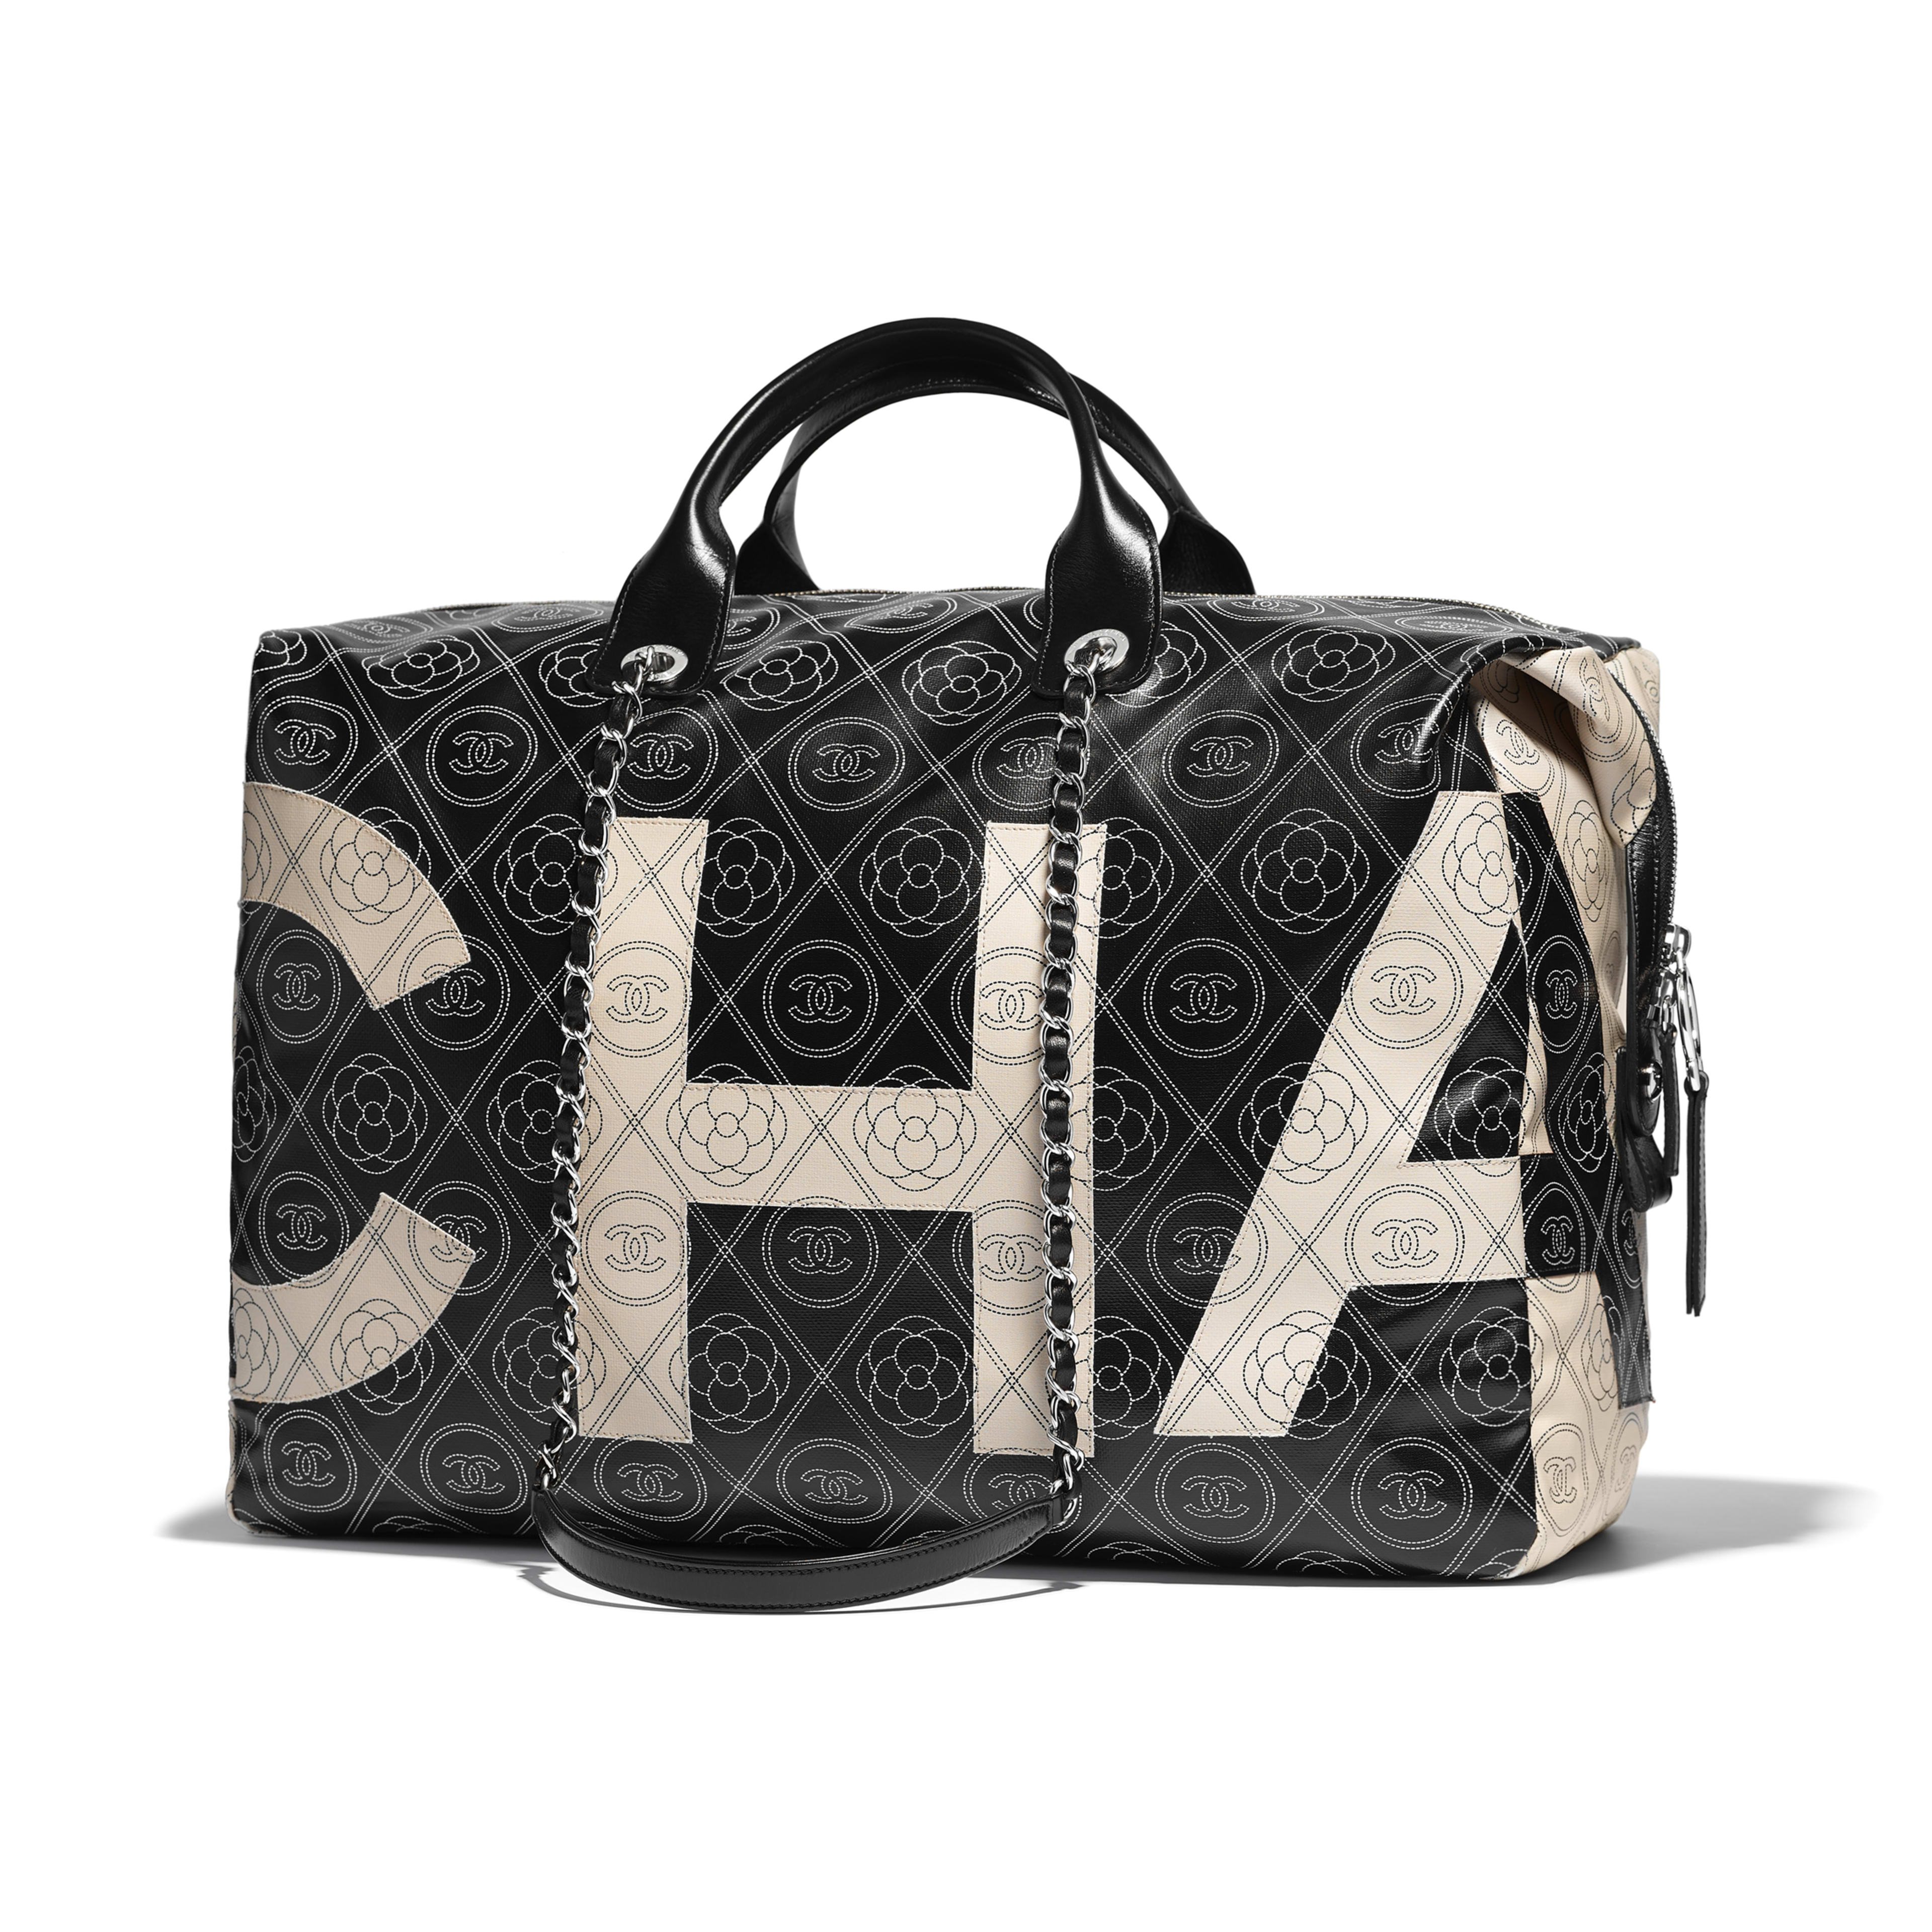 Bowling Bag Printed Canvas, Calfskin & Silver-Tone Metal Black & Beige -                                  view 1 - see full sized version